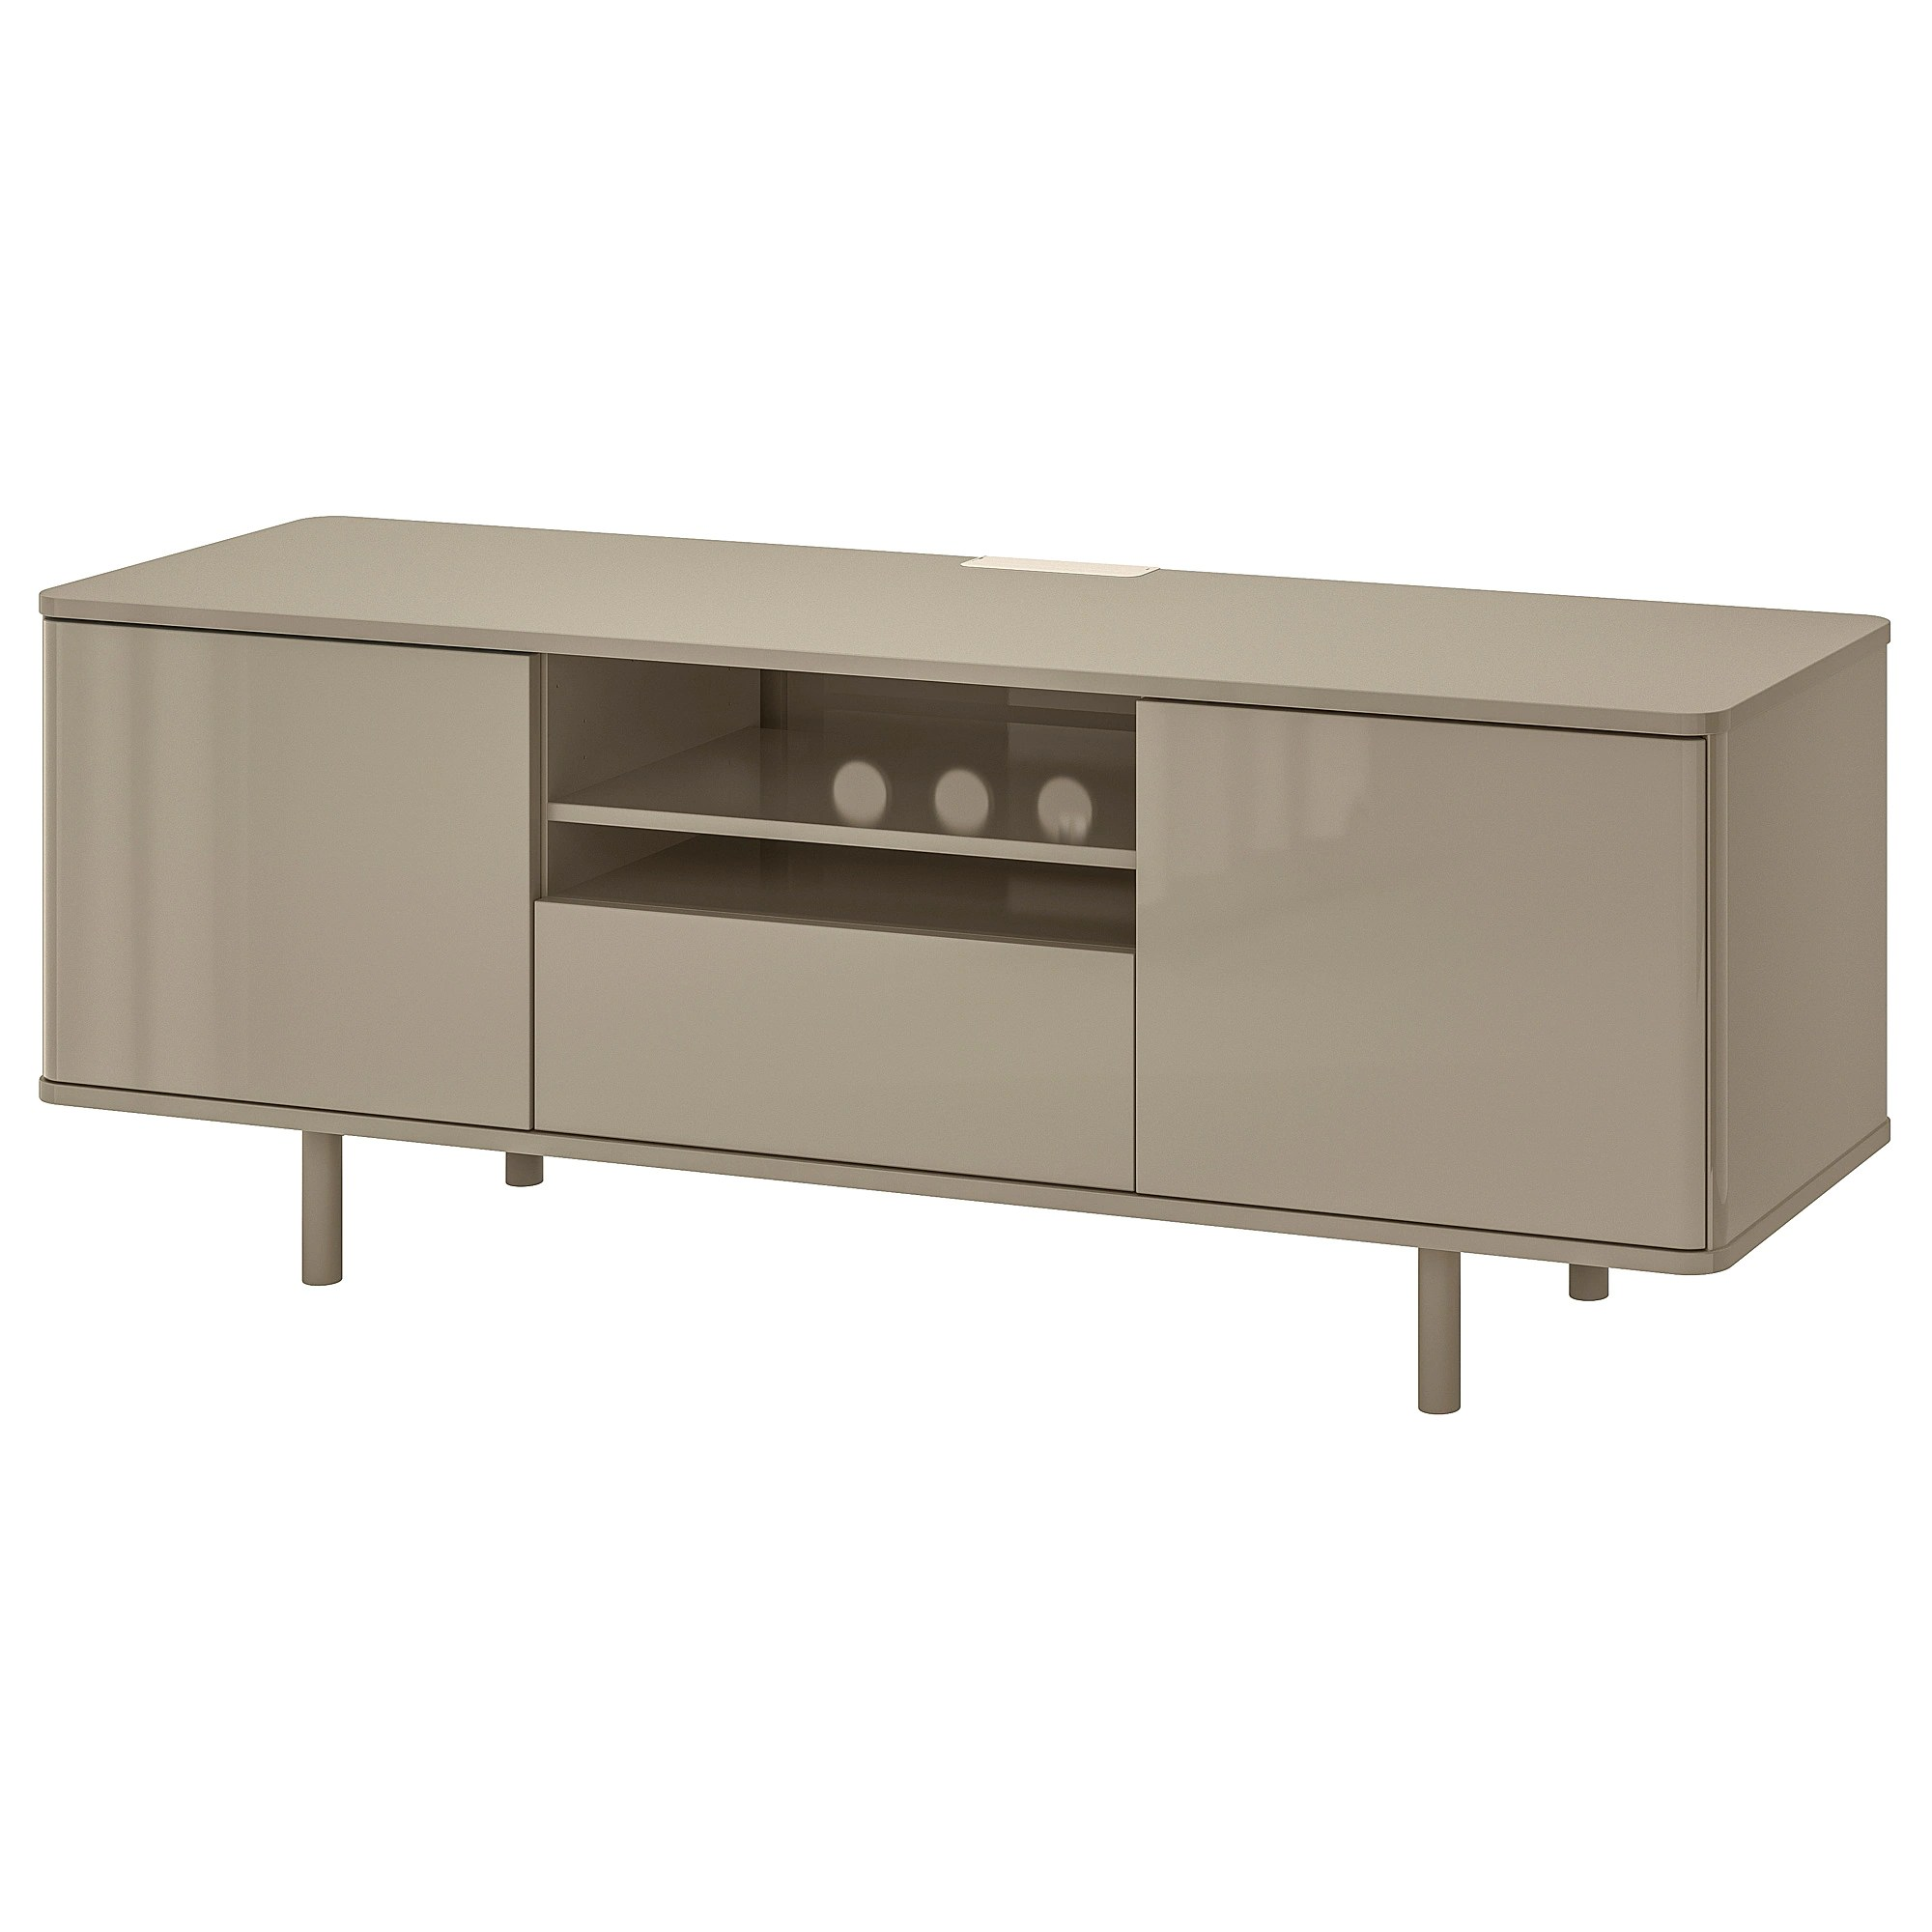 Ikea Bank Code Mostorp Tv Bench Beige High Gloss Beige